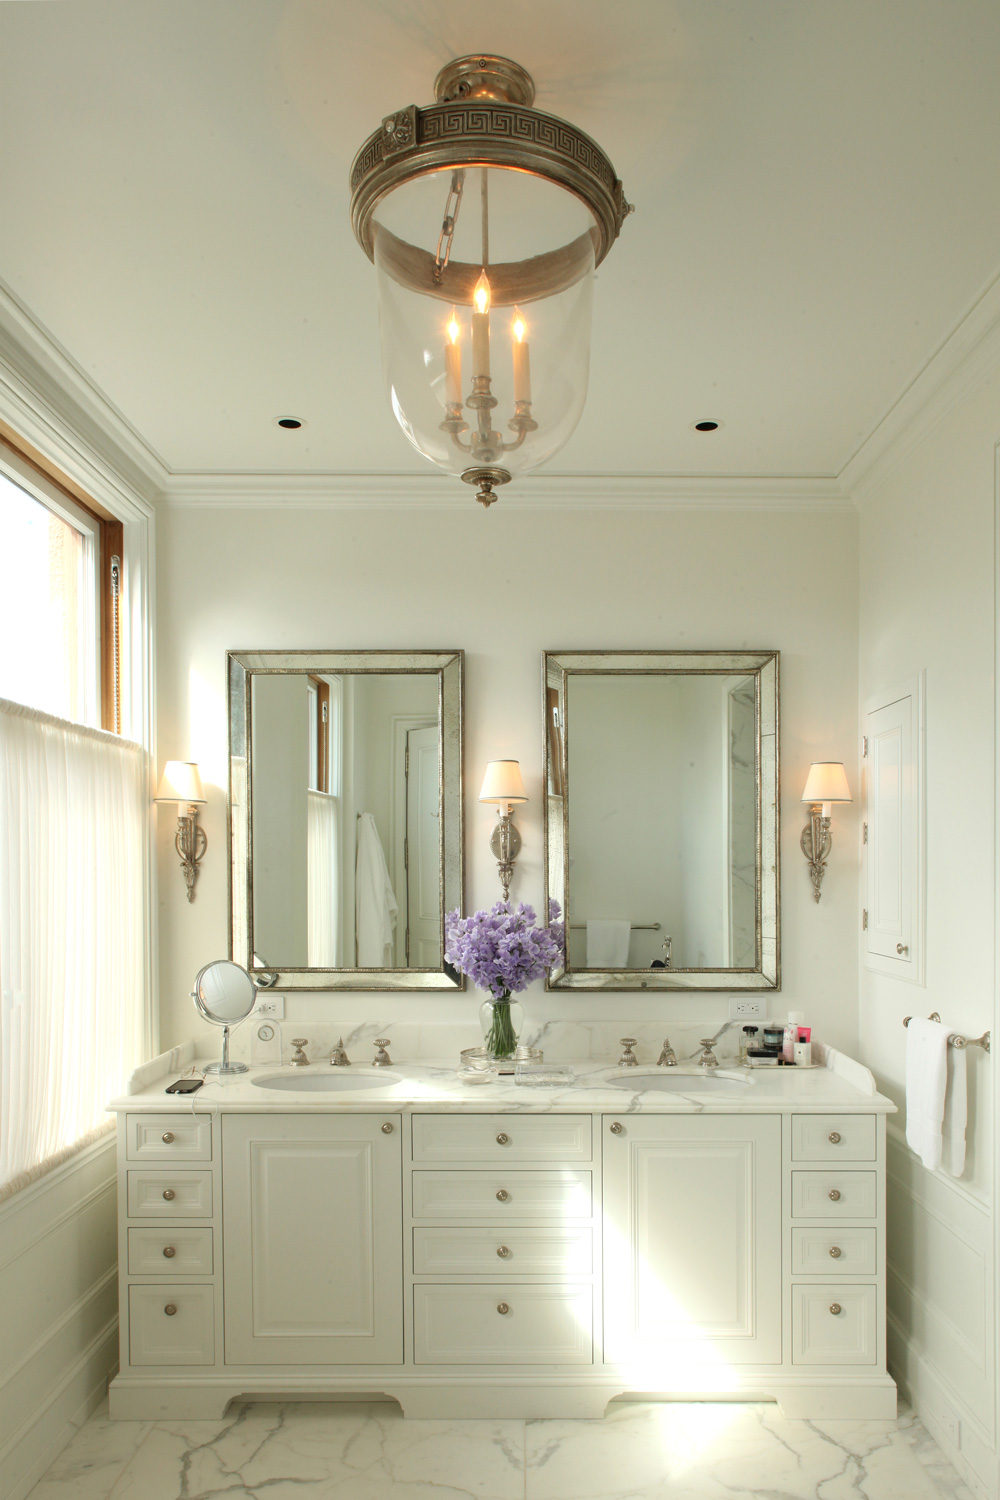 This San Francisco renovation features richly detailed baths in an atmosphere of luxurious restraint